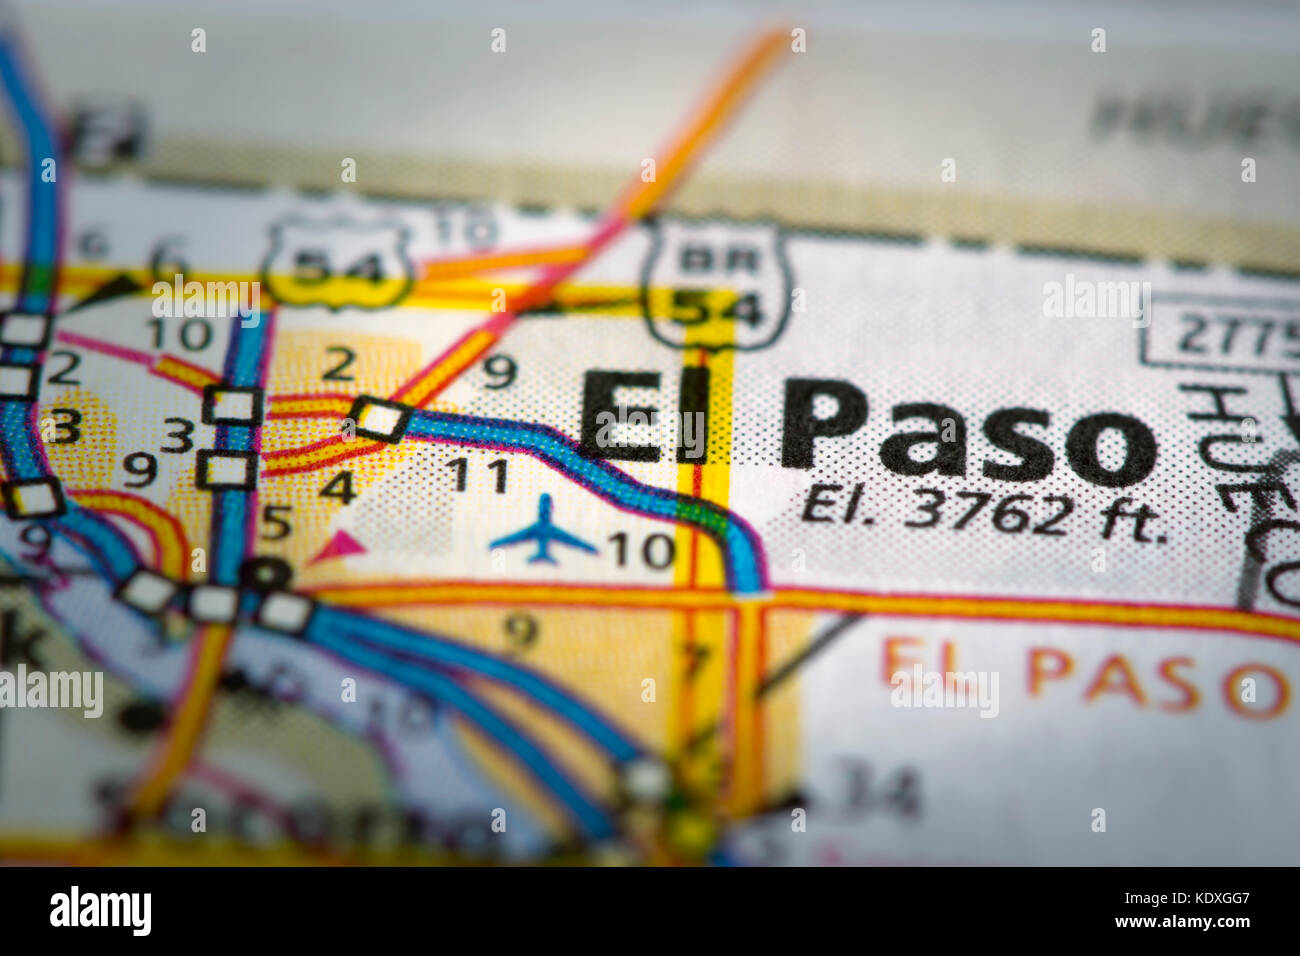 Closeup of El Paso Texas on a road map of the United States Stock